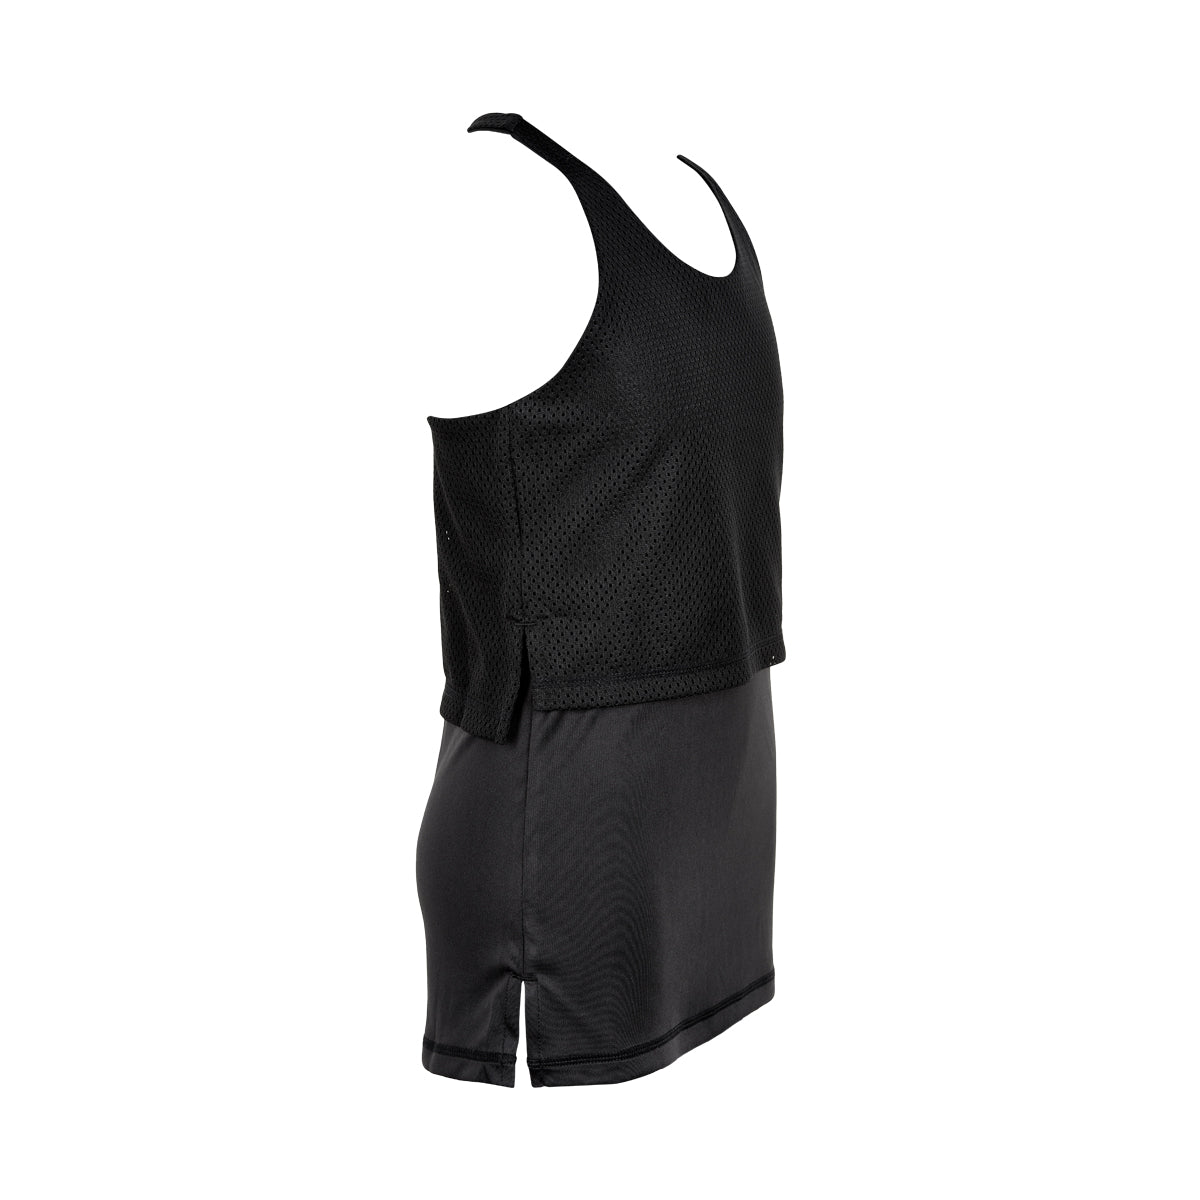 THE NEW PURE PURE Move Tank Top TANKTOP BLACK